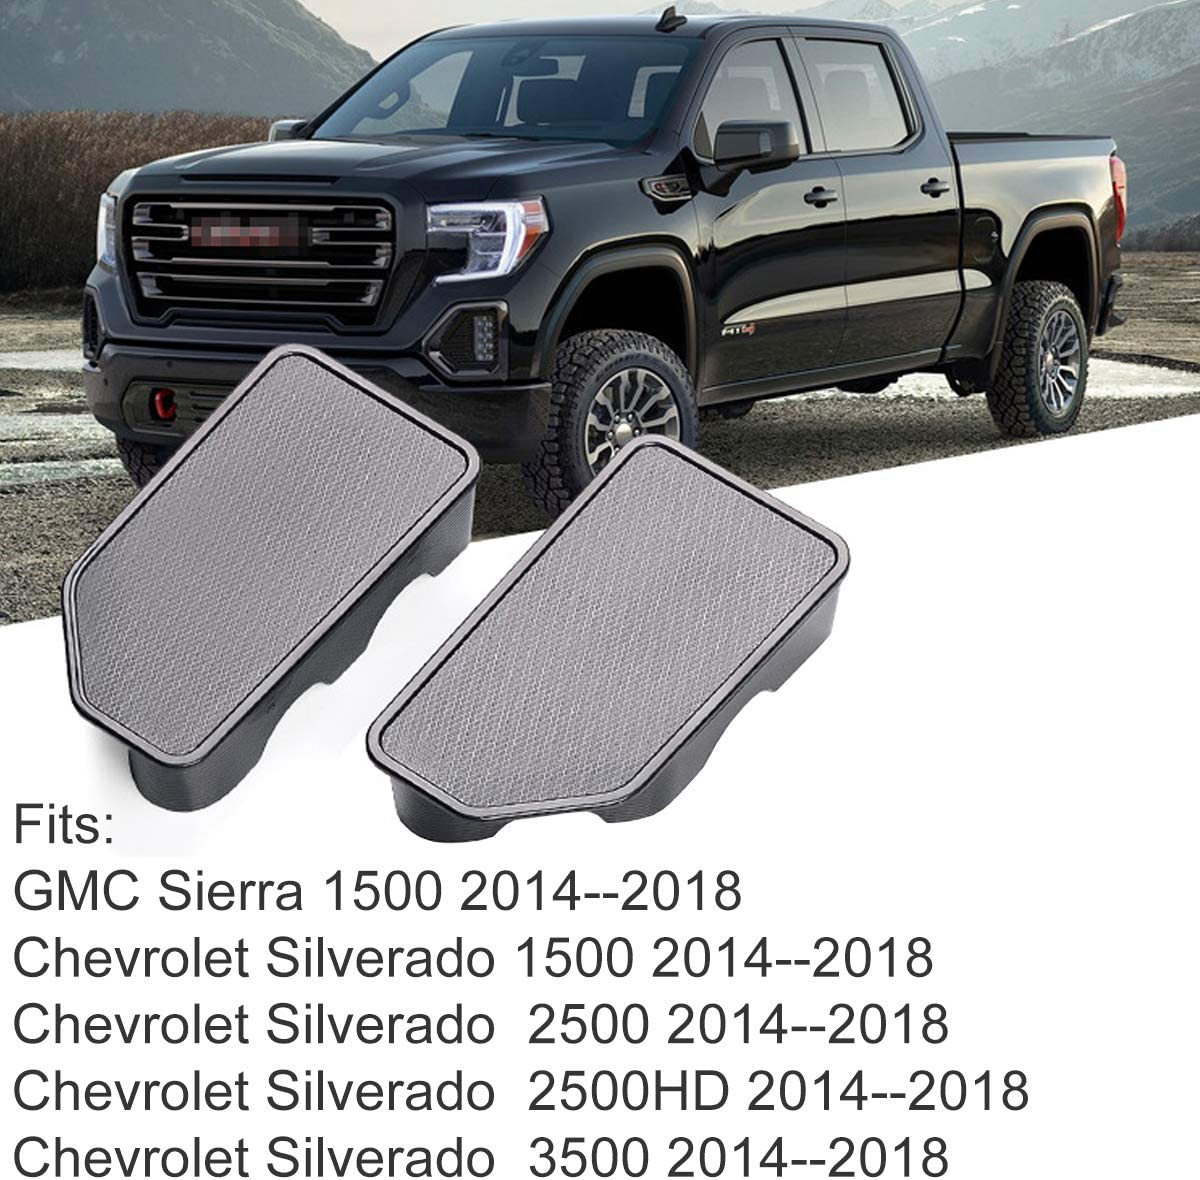 Moonlinks Stake Pocket Covers for 2019 2020 GMC Sierra and Chevy Silverado Bed Rail Stake Pocket Caps(2 Pieces)